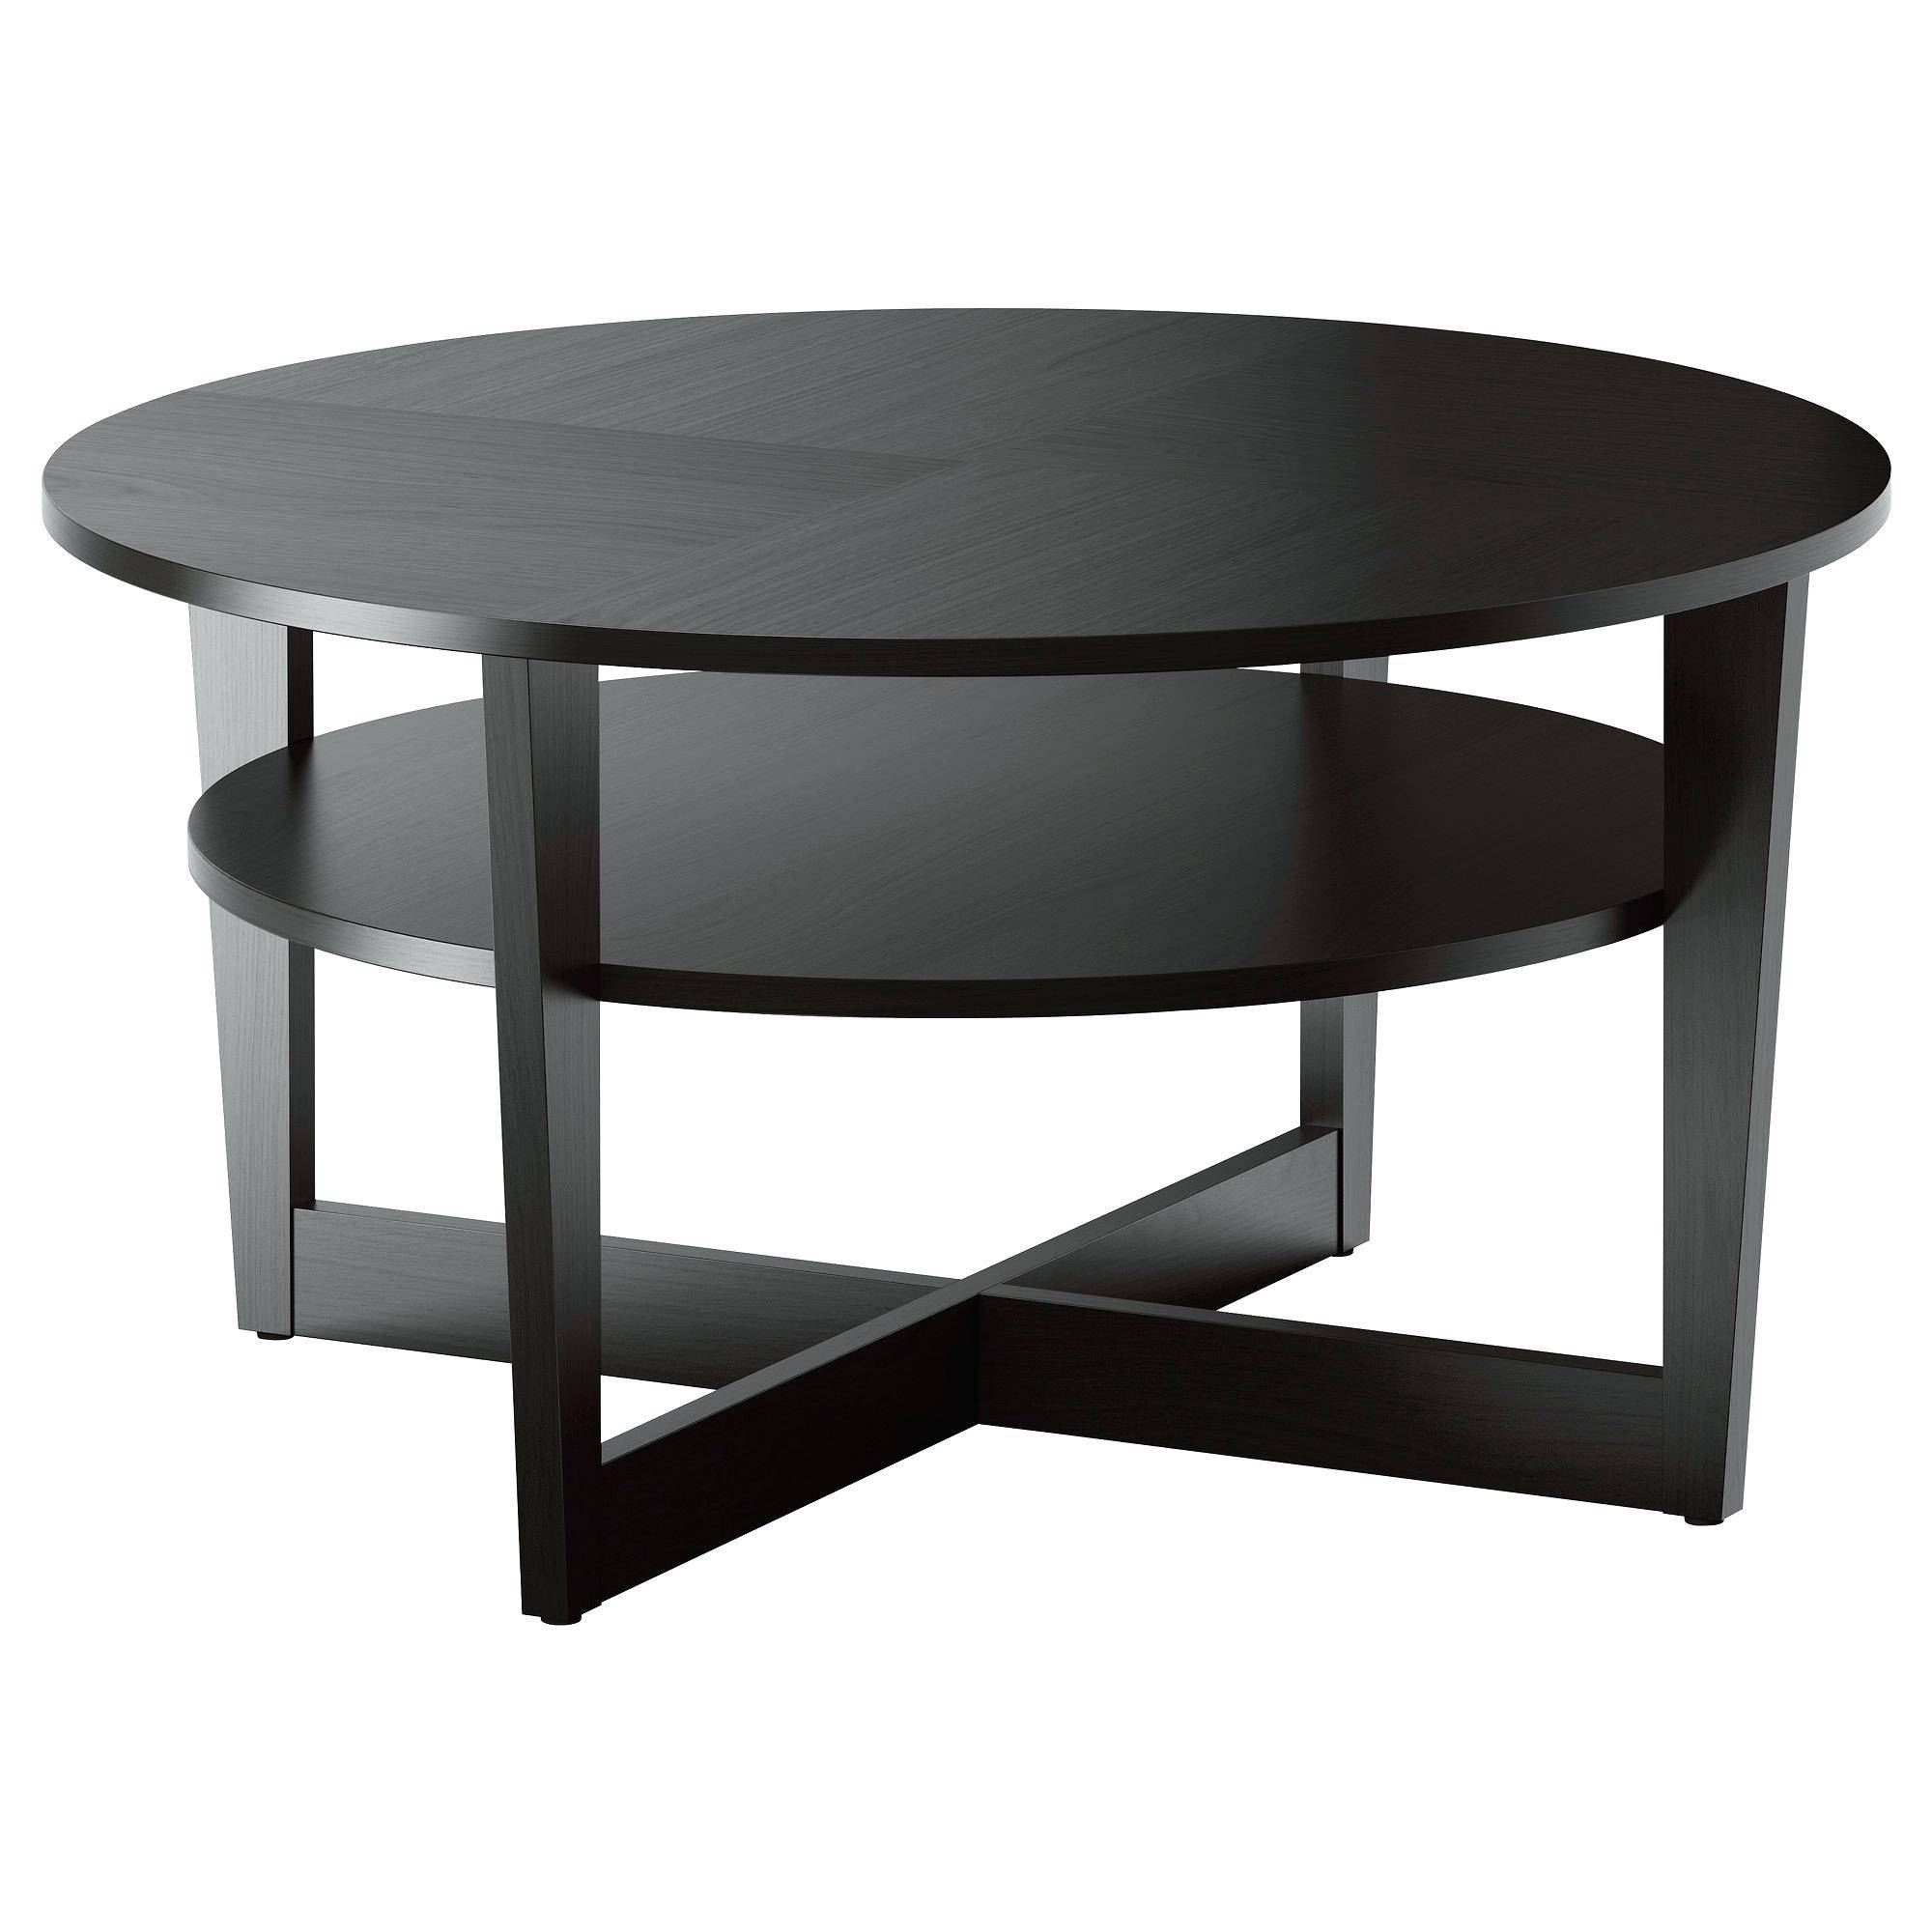 Coffee Table ~ Coffee Tables Round And Walnut Tableblack Couch throughout Clock Coffee Tables Round Shaped (Image 11 of 30)